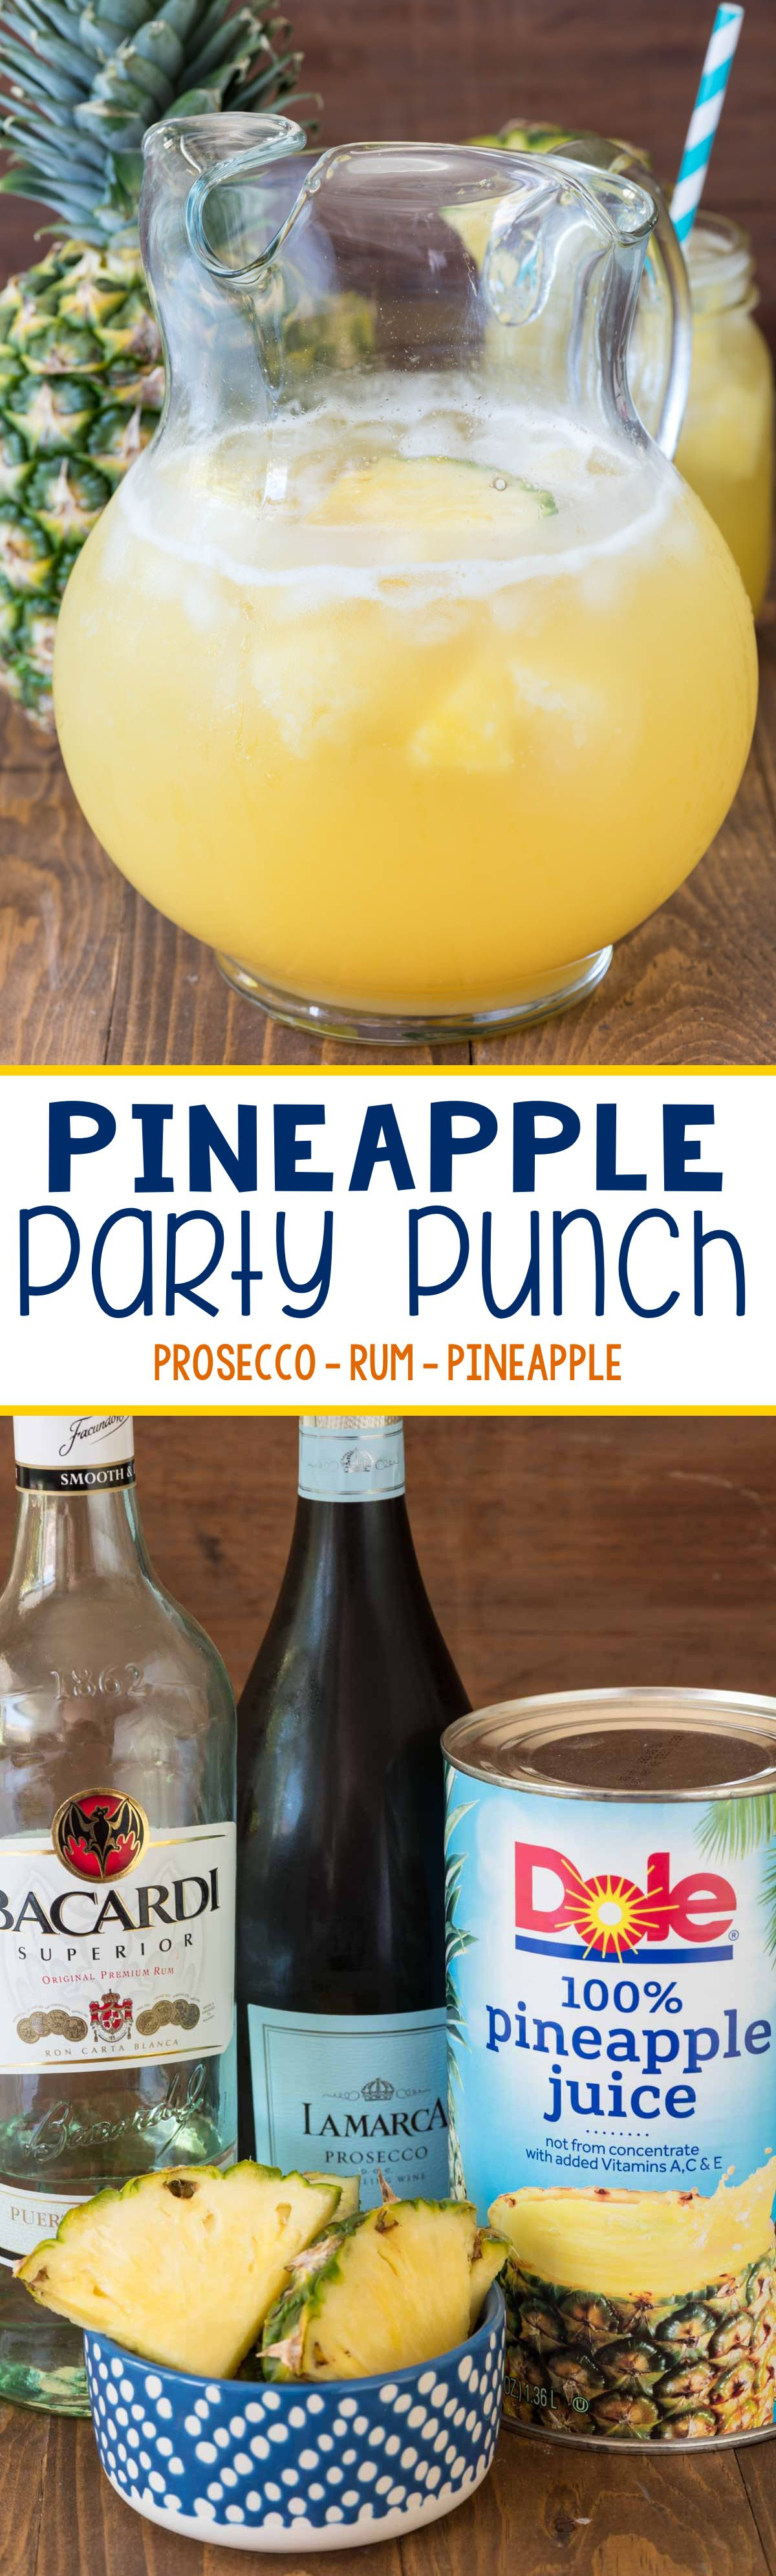 Pineapple Party Punch | Recipe | Punch recipes